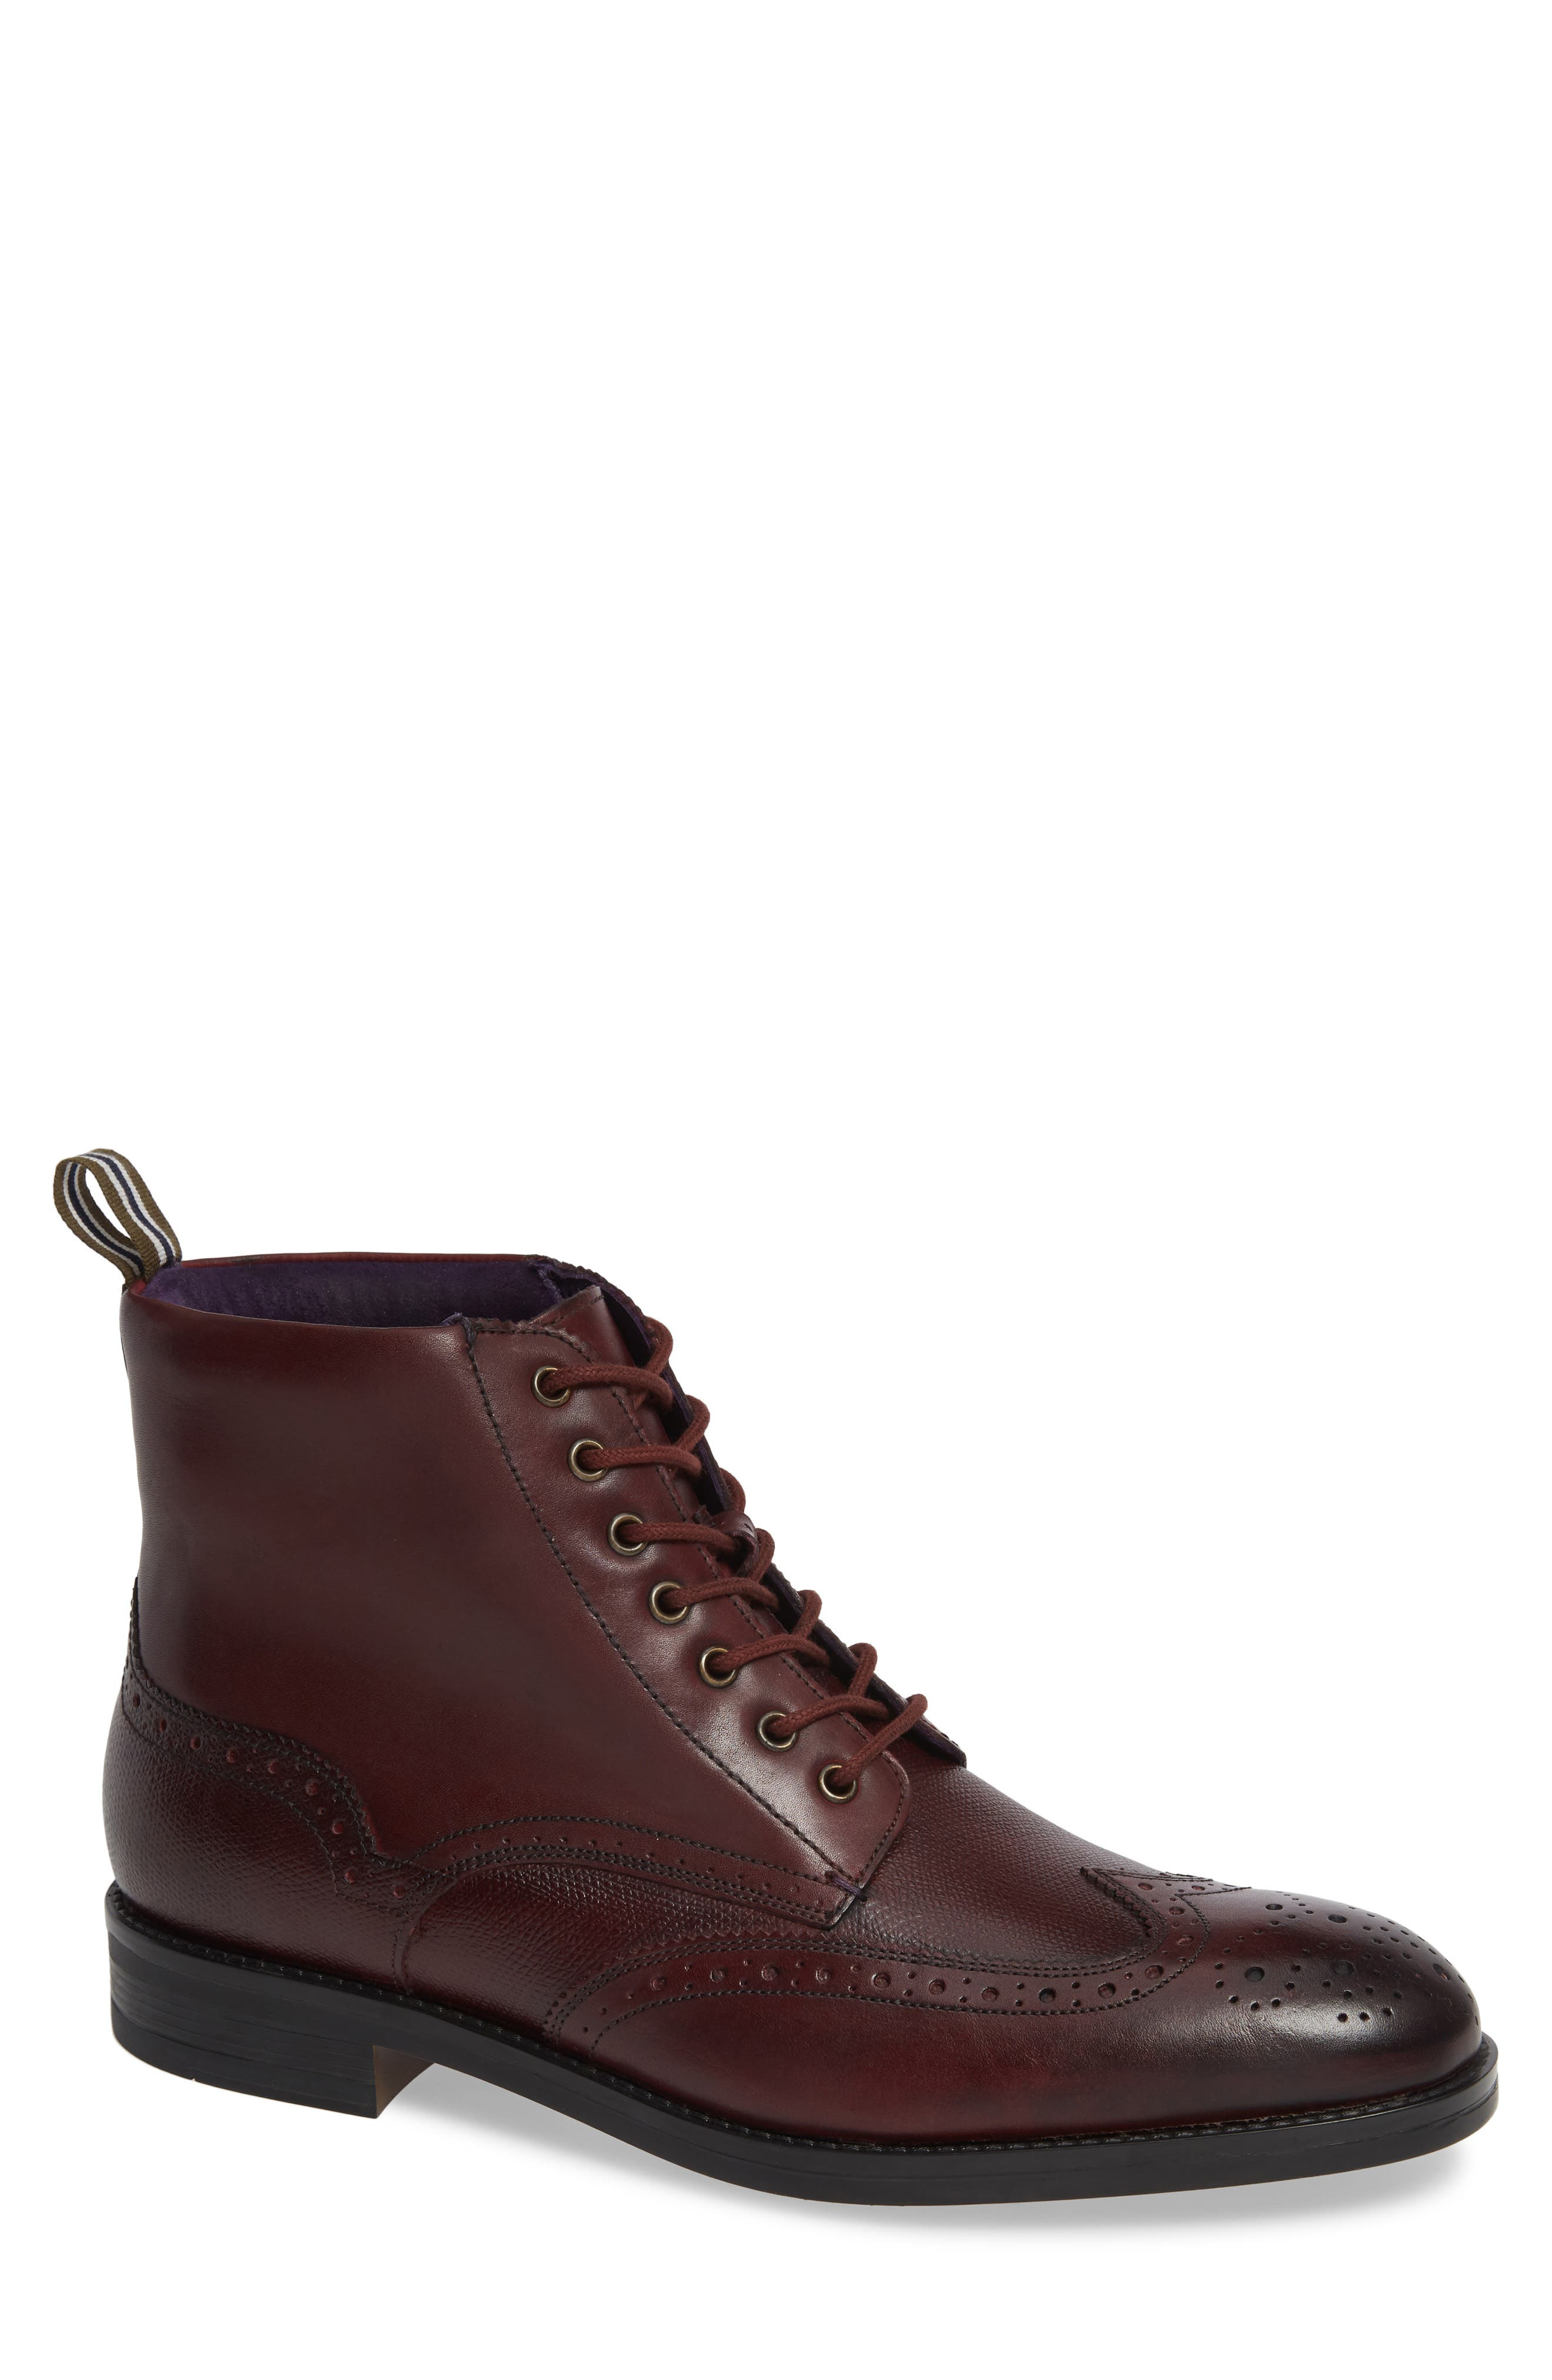 Brogue Ankle Boot,                             Main thumbnail 1, color,                             DARK RED LEATHER